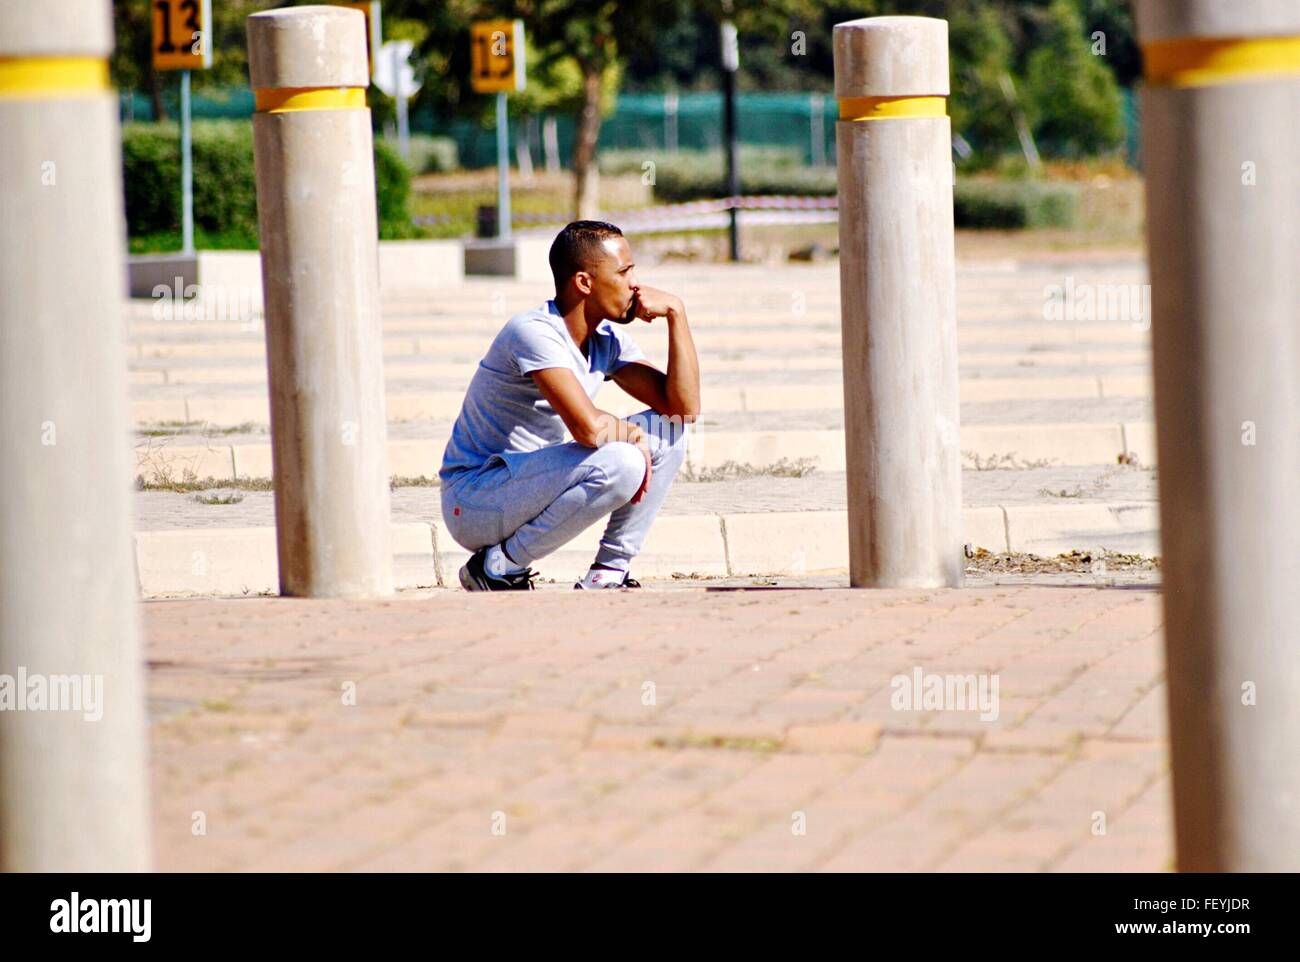 Young Man Crouching While Contemplating On Street - Stock Image